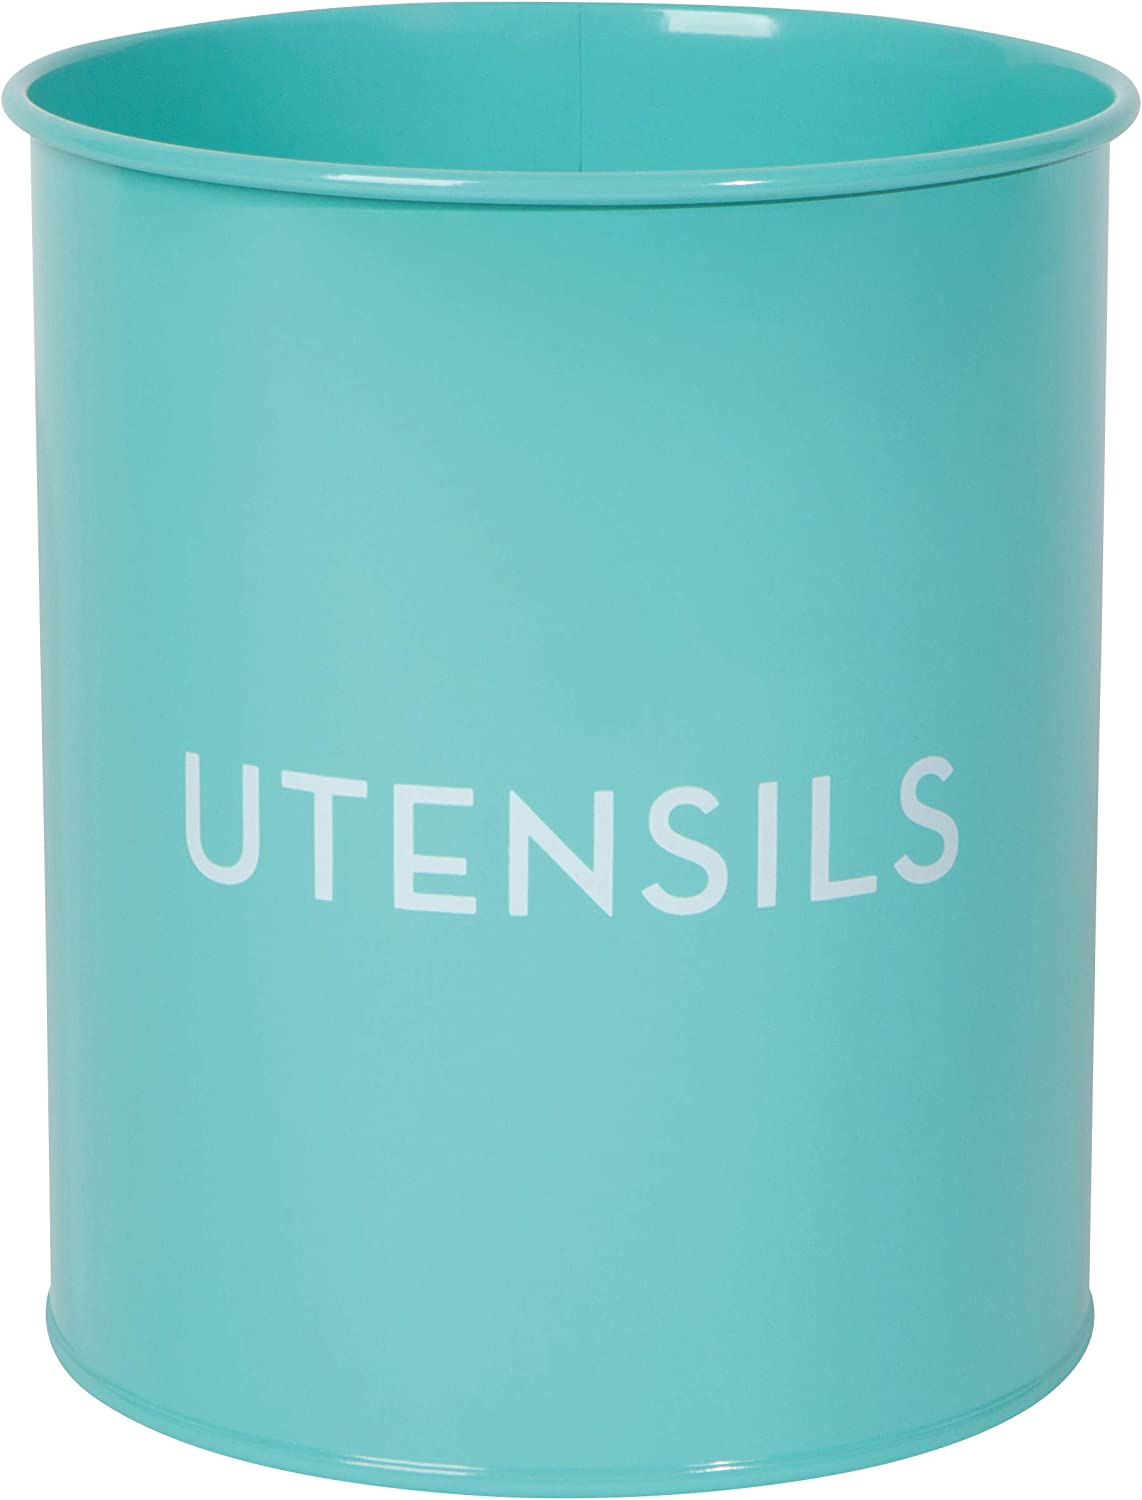 Now Designs Tin Utensil Crock, 5 x 5 x 6, Solid Turquoise